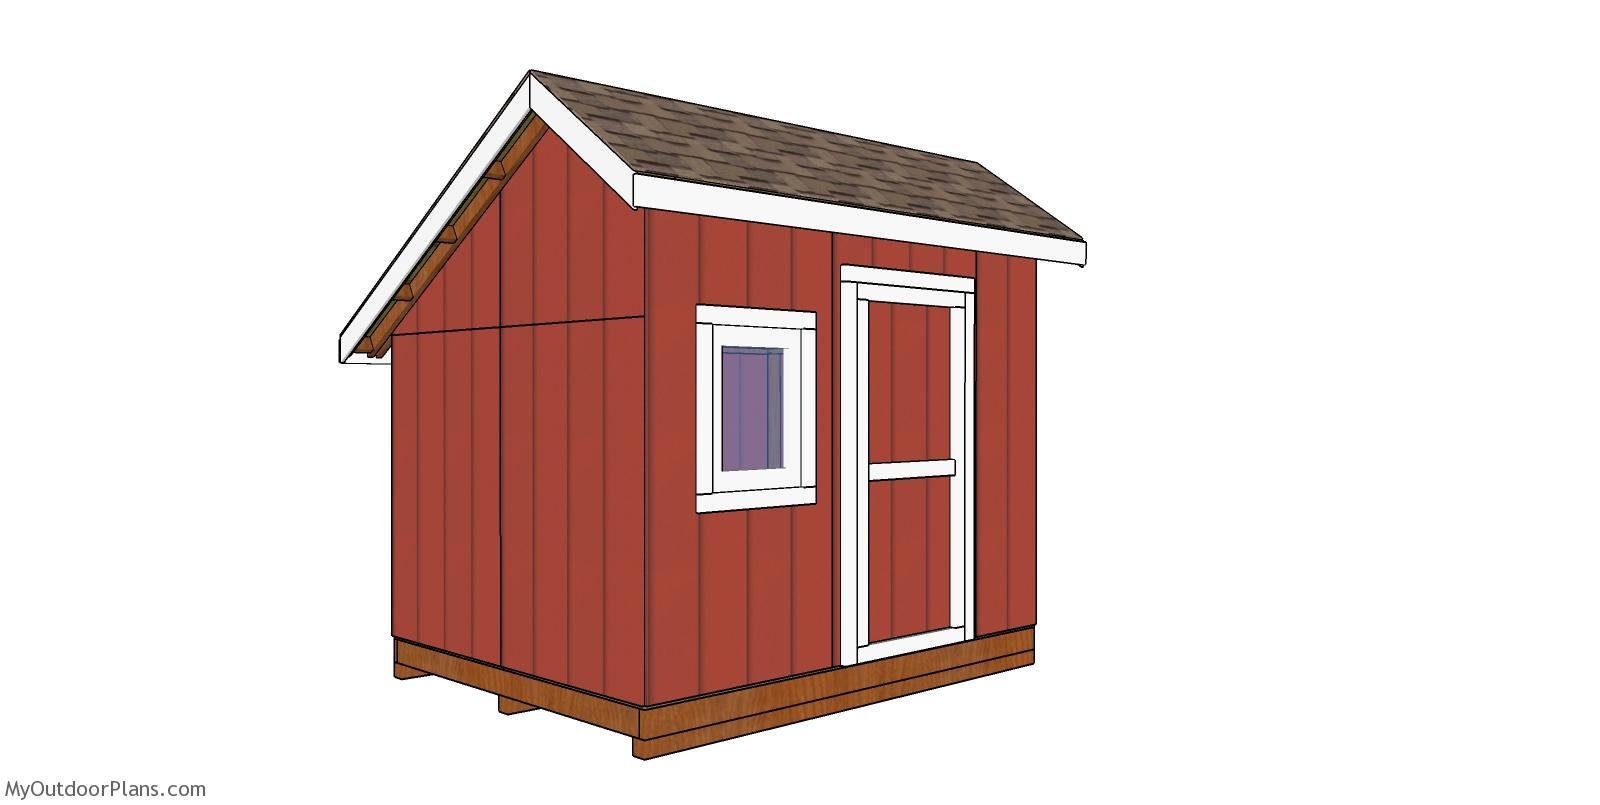 8x10 Saltbox Shed - Free DIY Plans